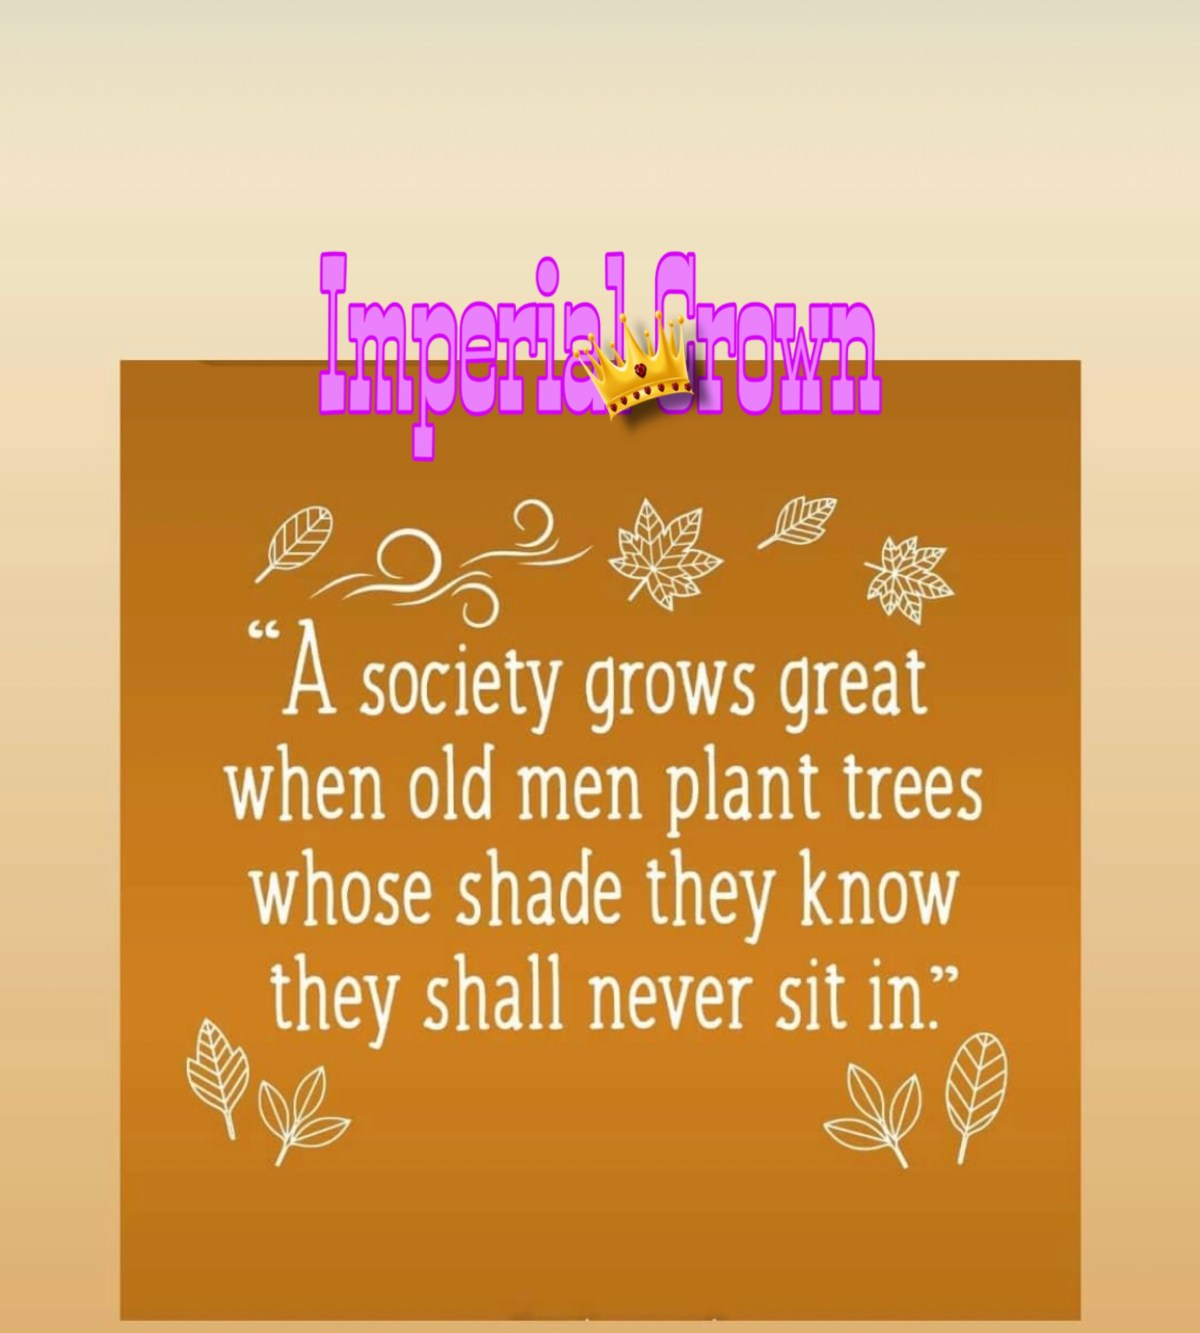 """ A society grows great when old men plant trees whose shade they know they shall never sit in """